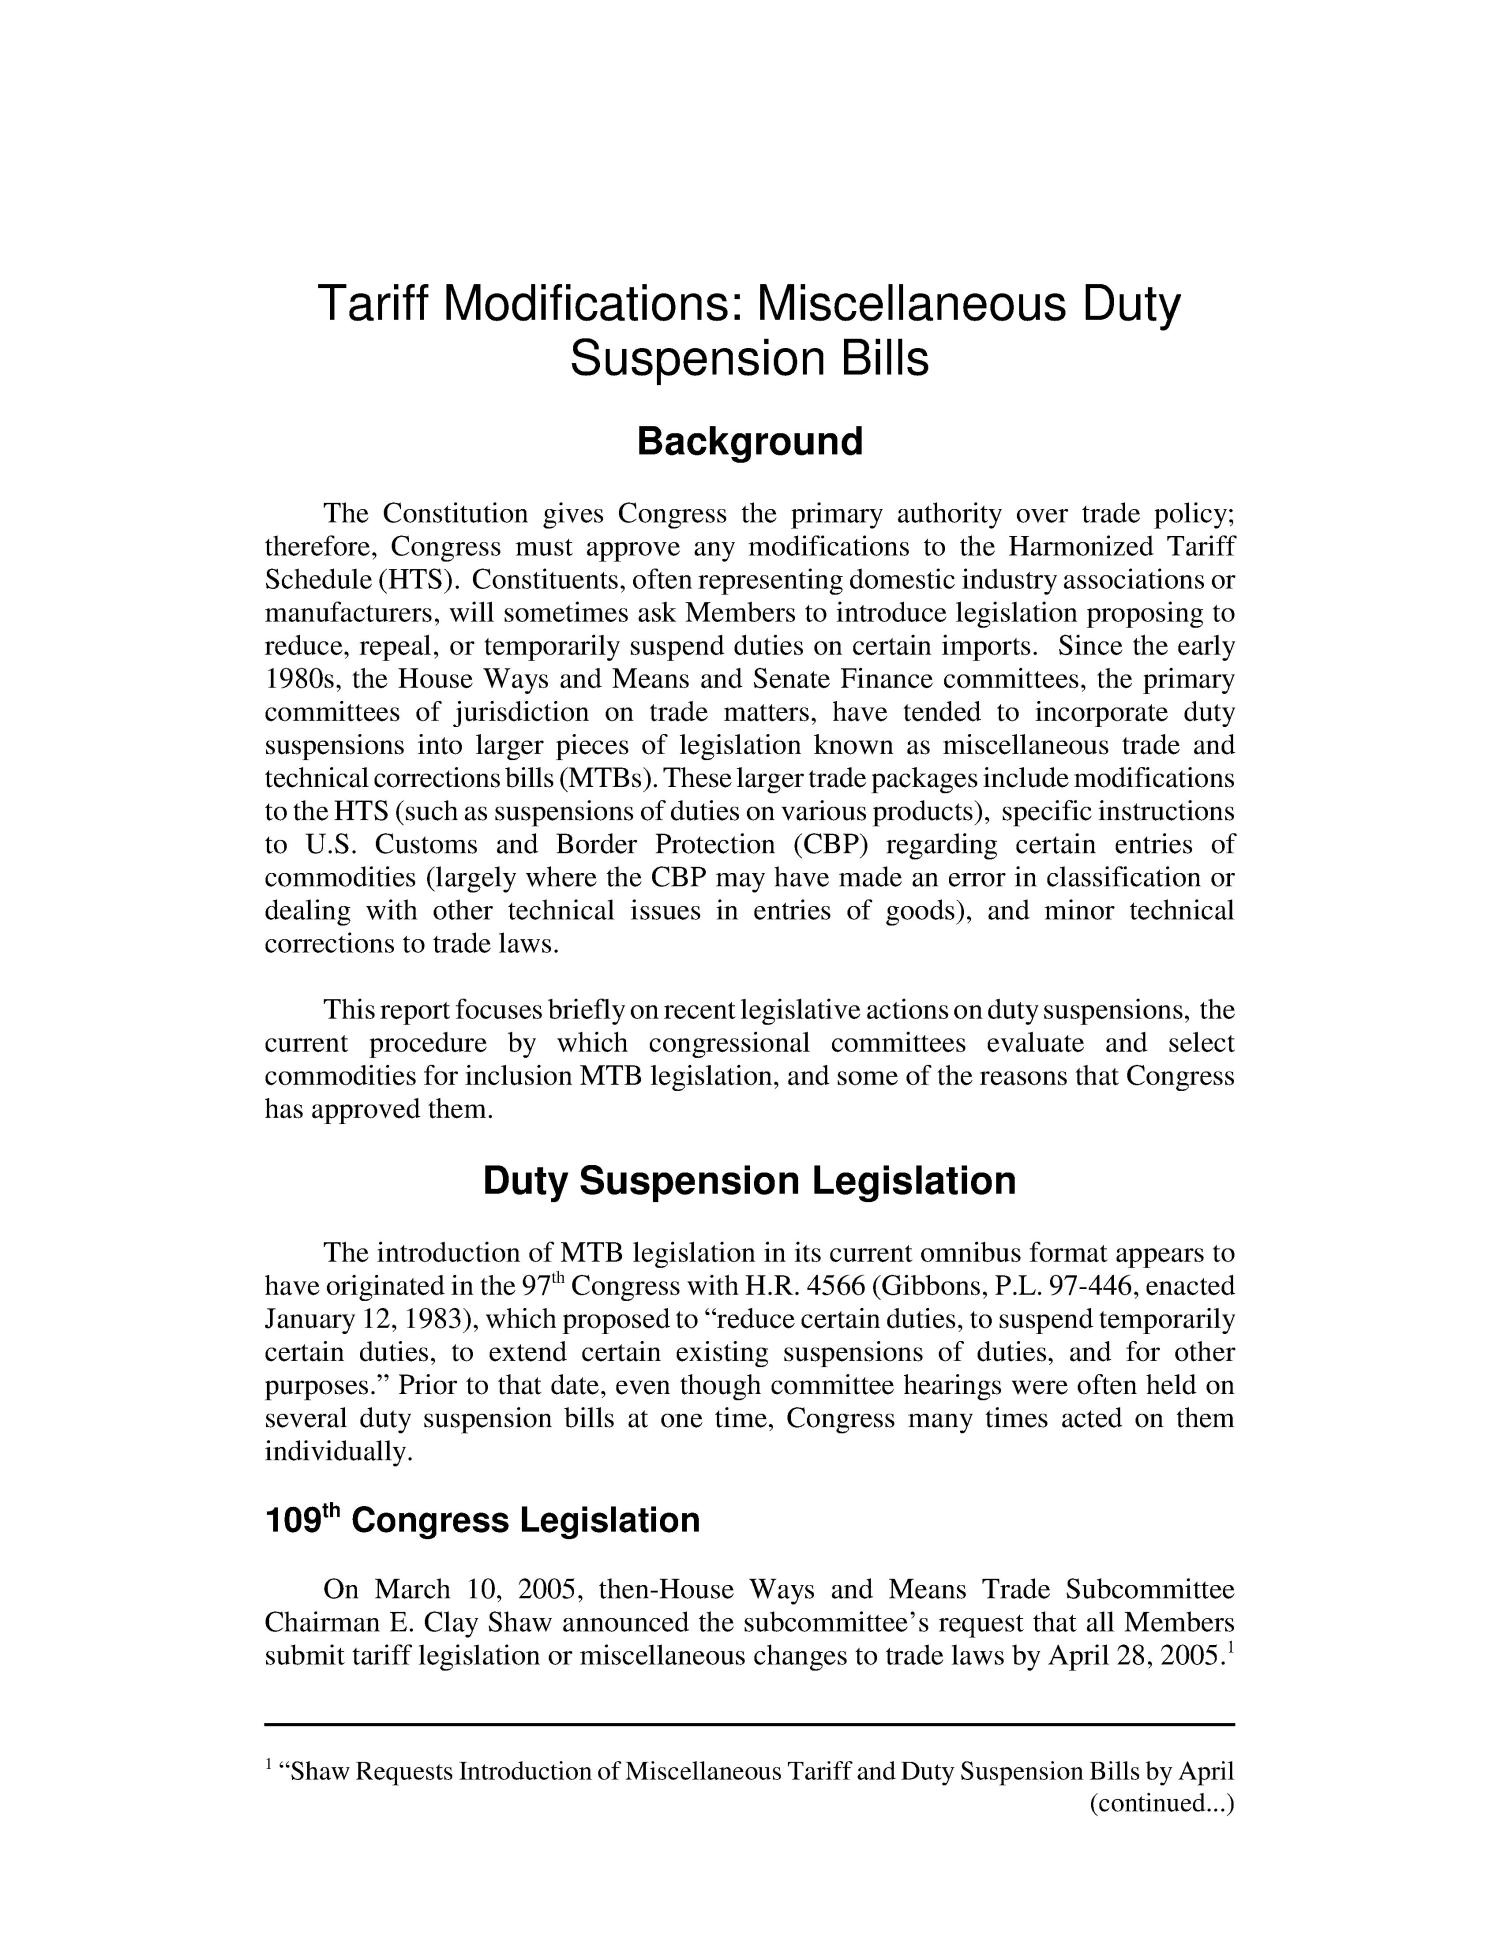 Tariff Modifications: Miscellaneous Duty Suspension Bills                                                                                                      [Sequence #]: 4 of 13